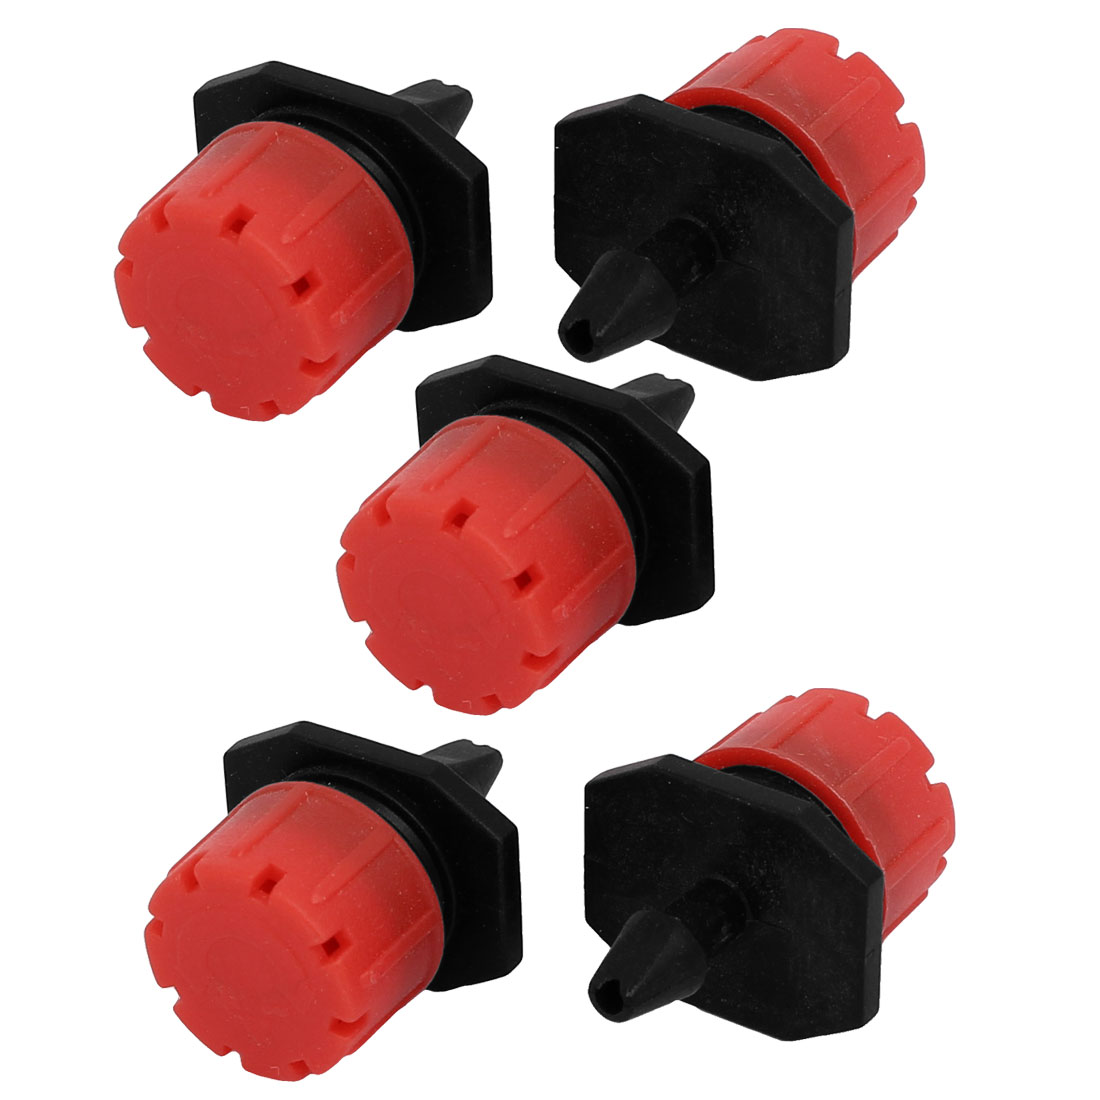 Plastic 8 Holes Adjustable Dripper Misting Irrigation Spray Nozzle 5pcs by